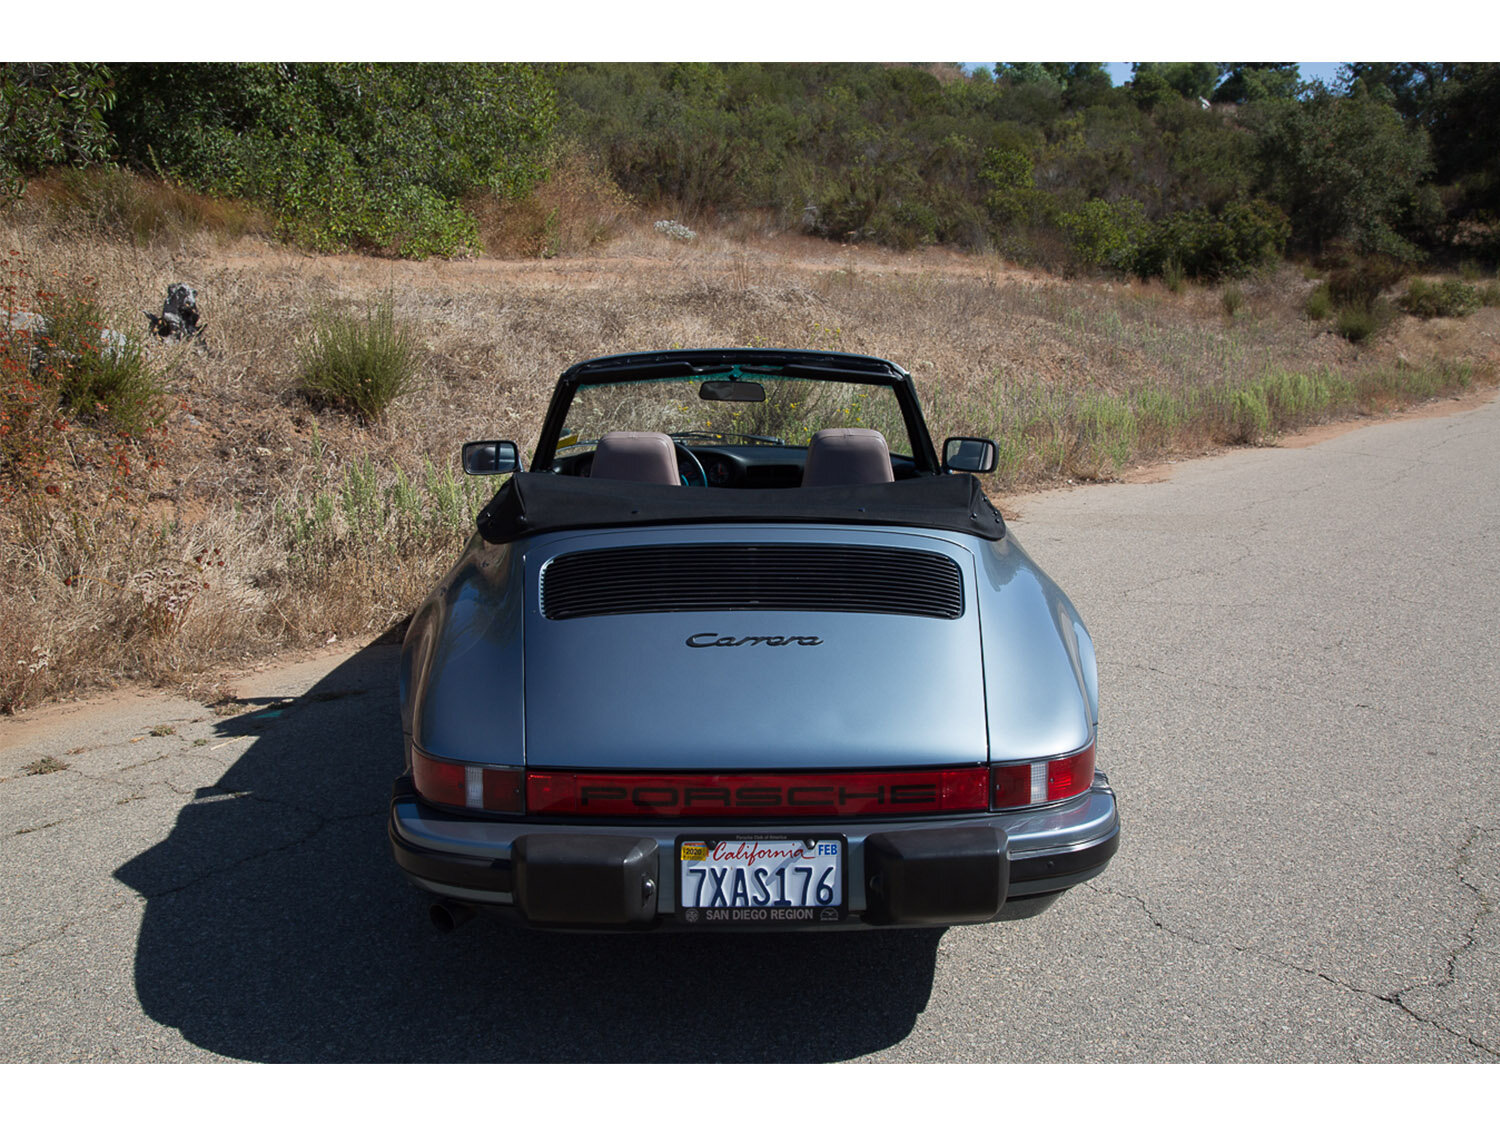 1984-carrera-cabriolet-slate-blue-911-sc-for-sale-makellos-classics_0001s_0000s_0027_1B7A6611.jpg